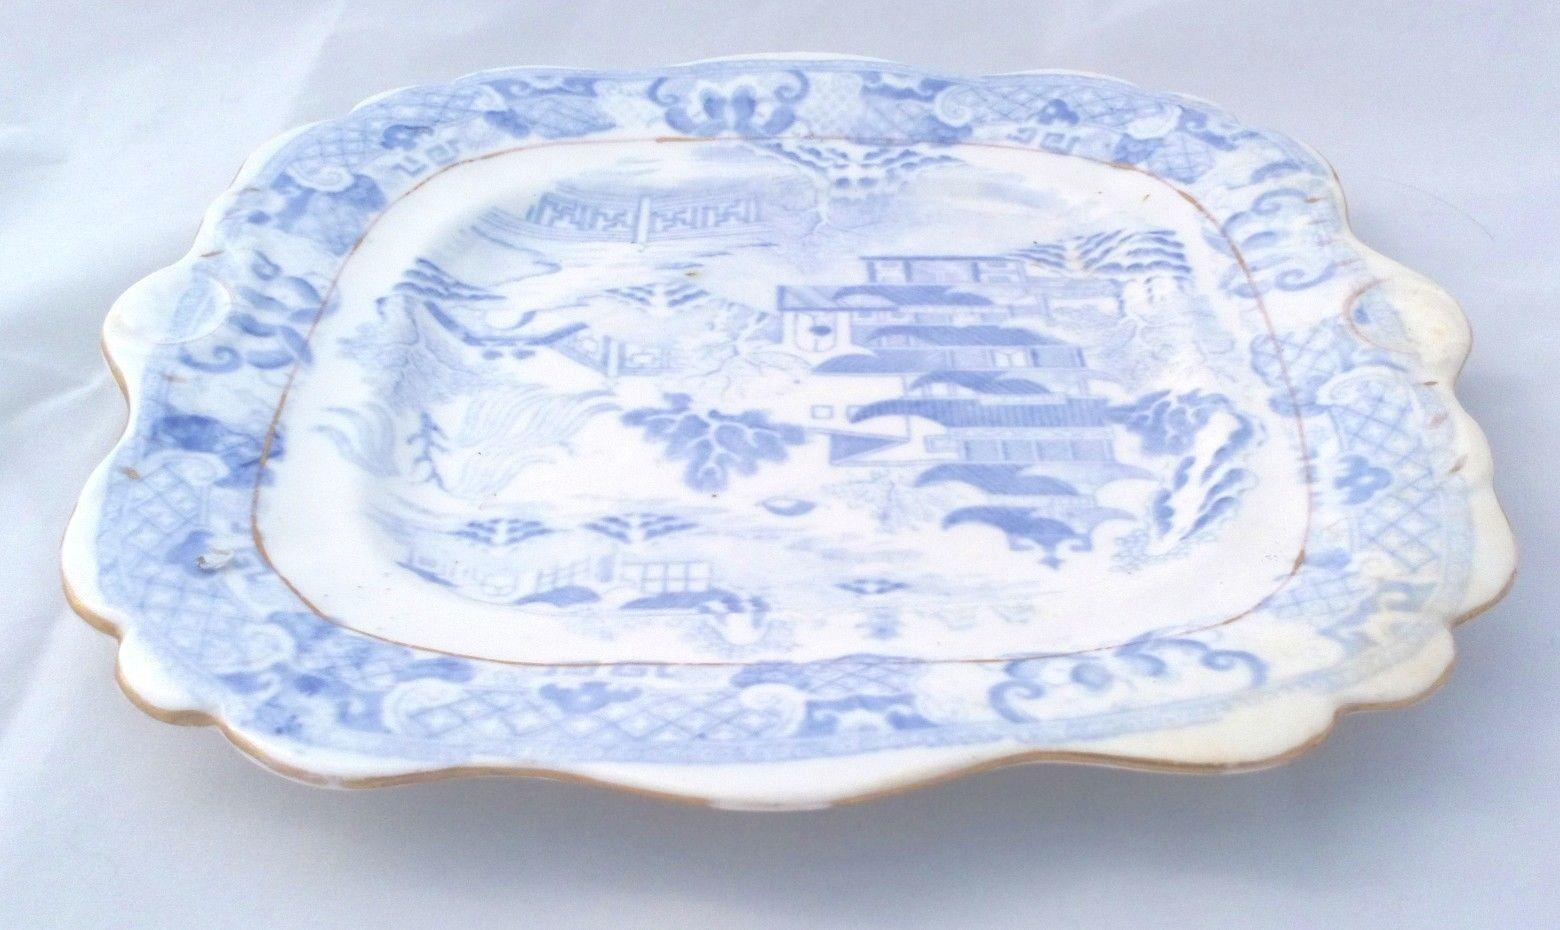 Antique Miles Mason Porcelain Bread and Butter Plate c 1810 Blue and White Print